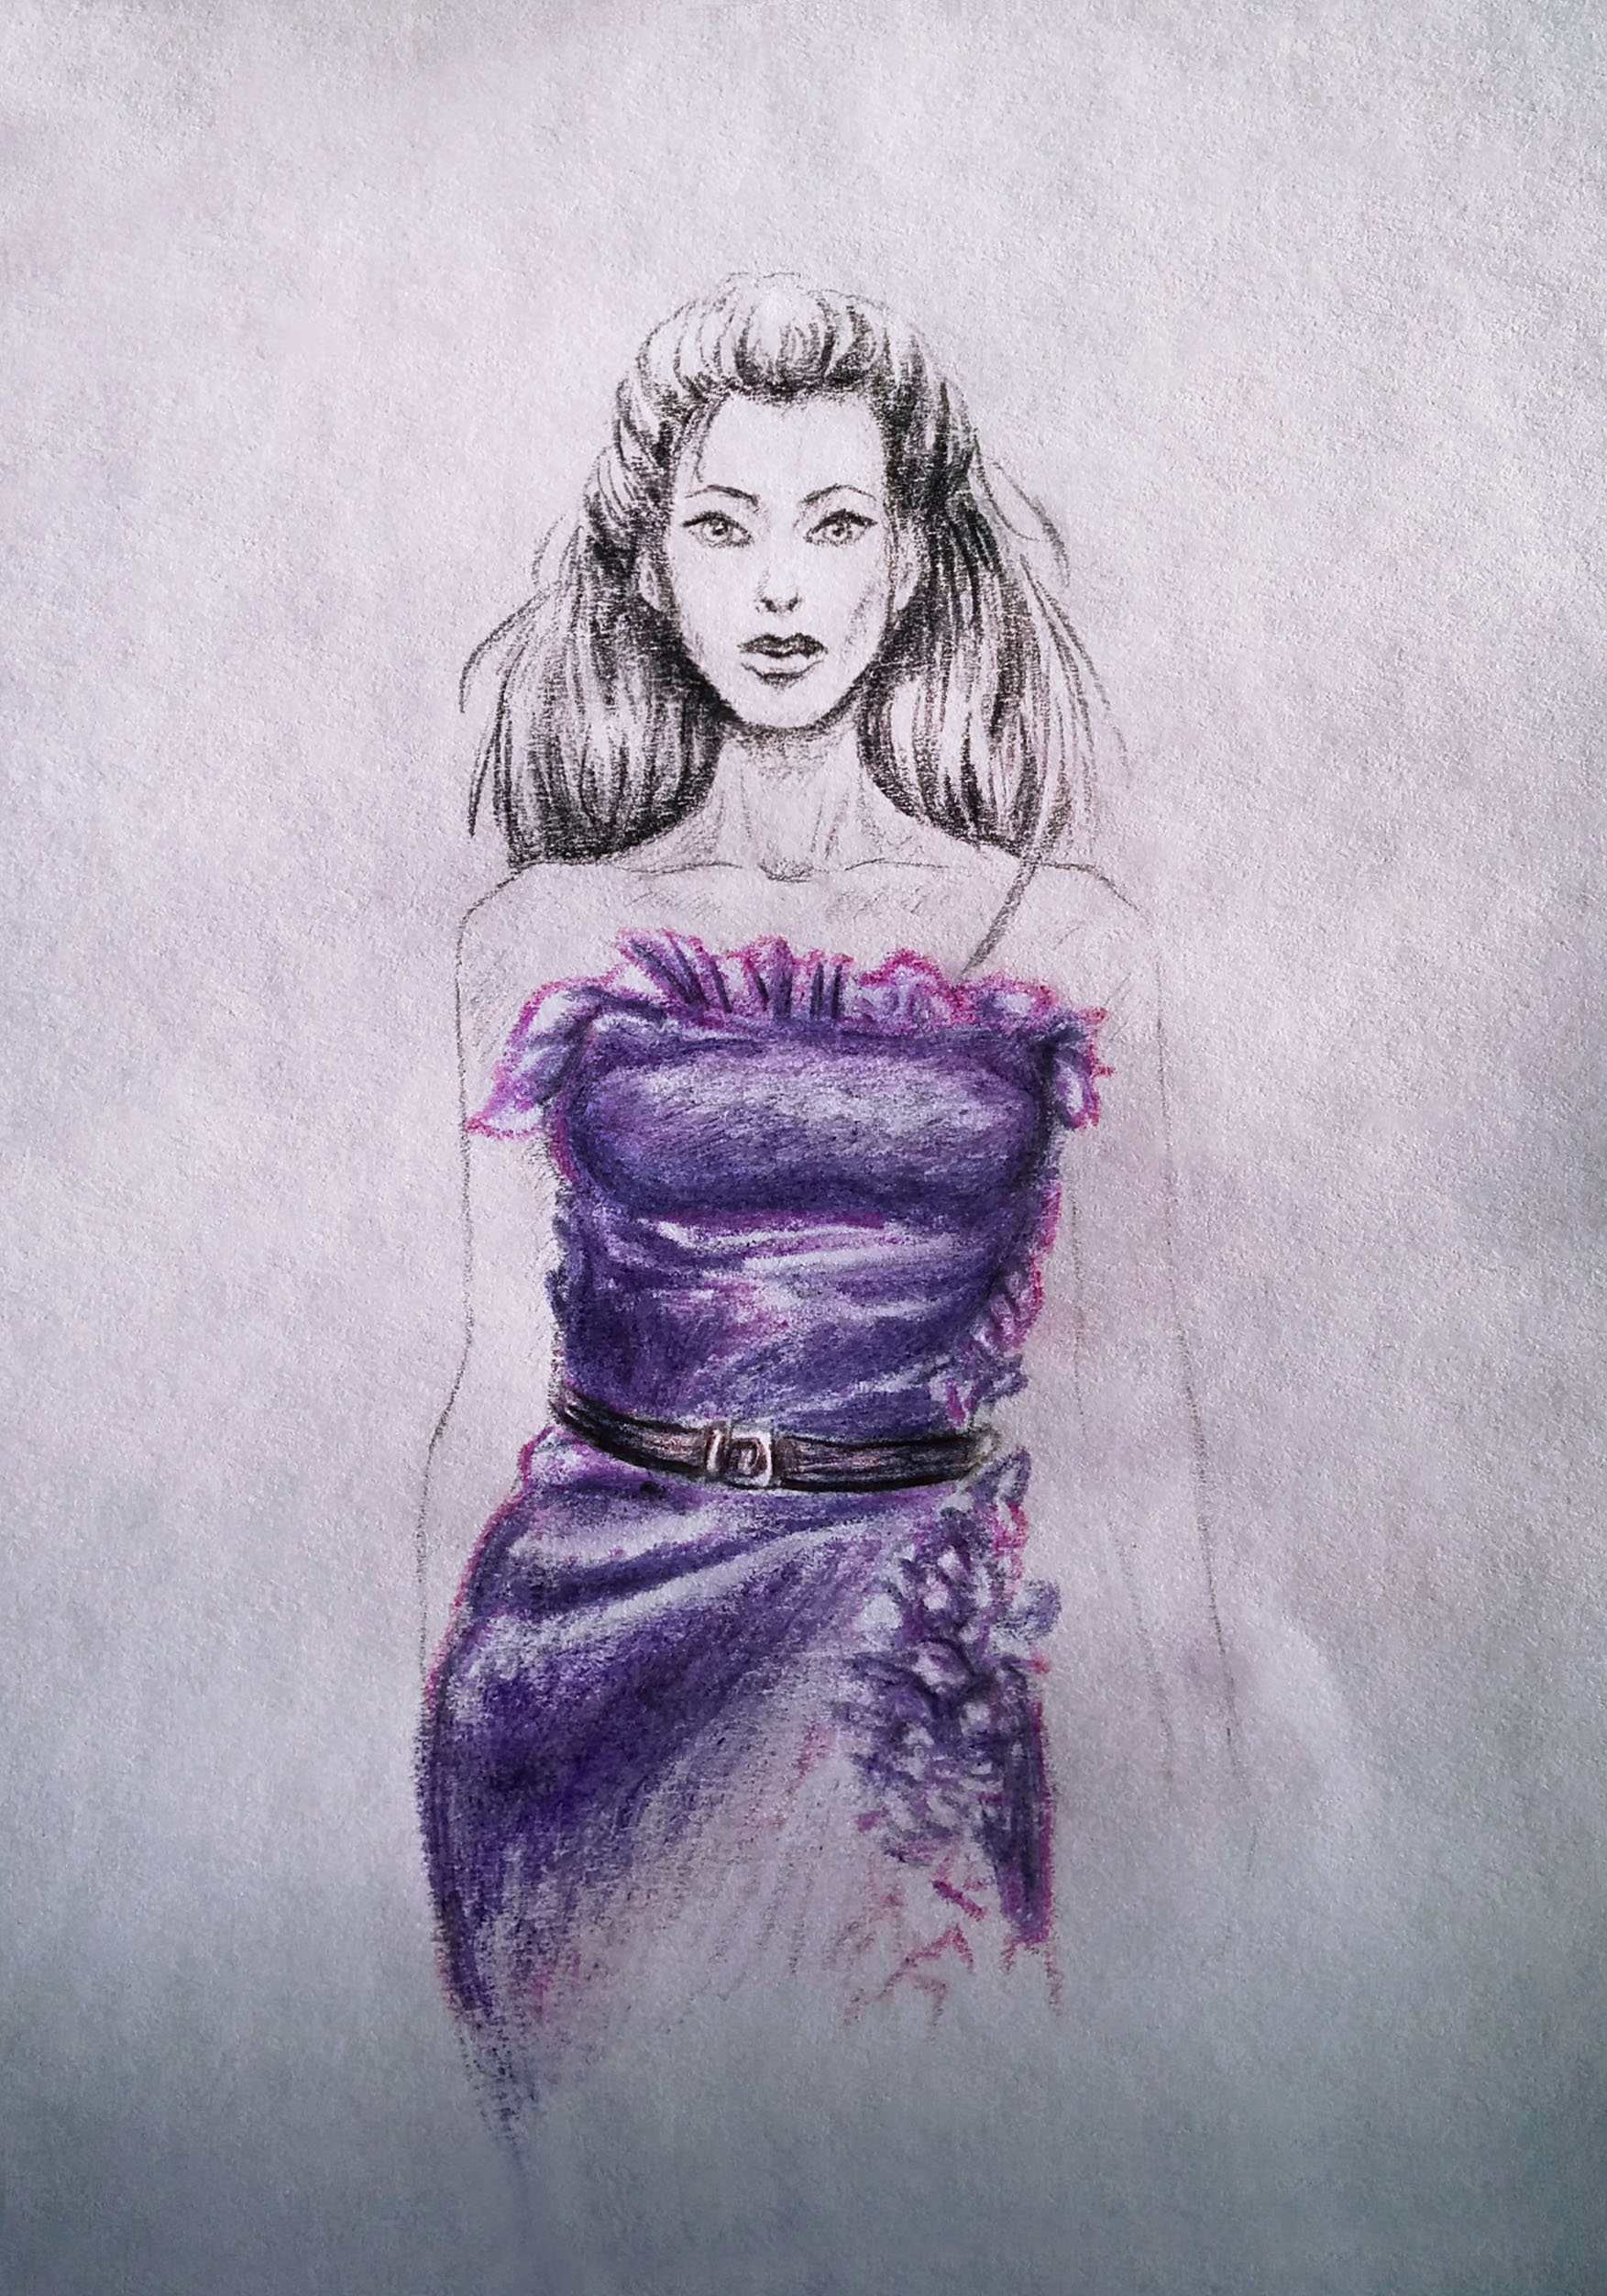 Fashion illustration Girl in lilac dress art by artist Alice Croft Рисунок Девушка в лиловом платье